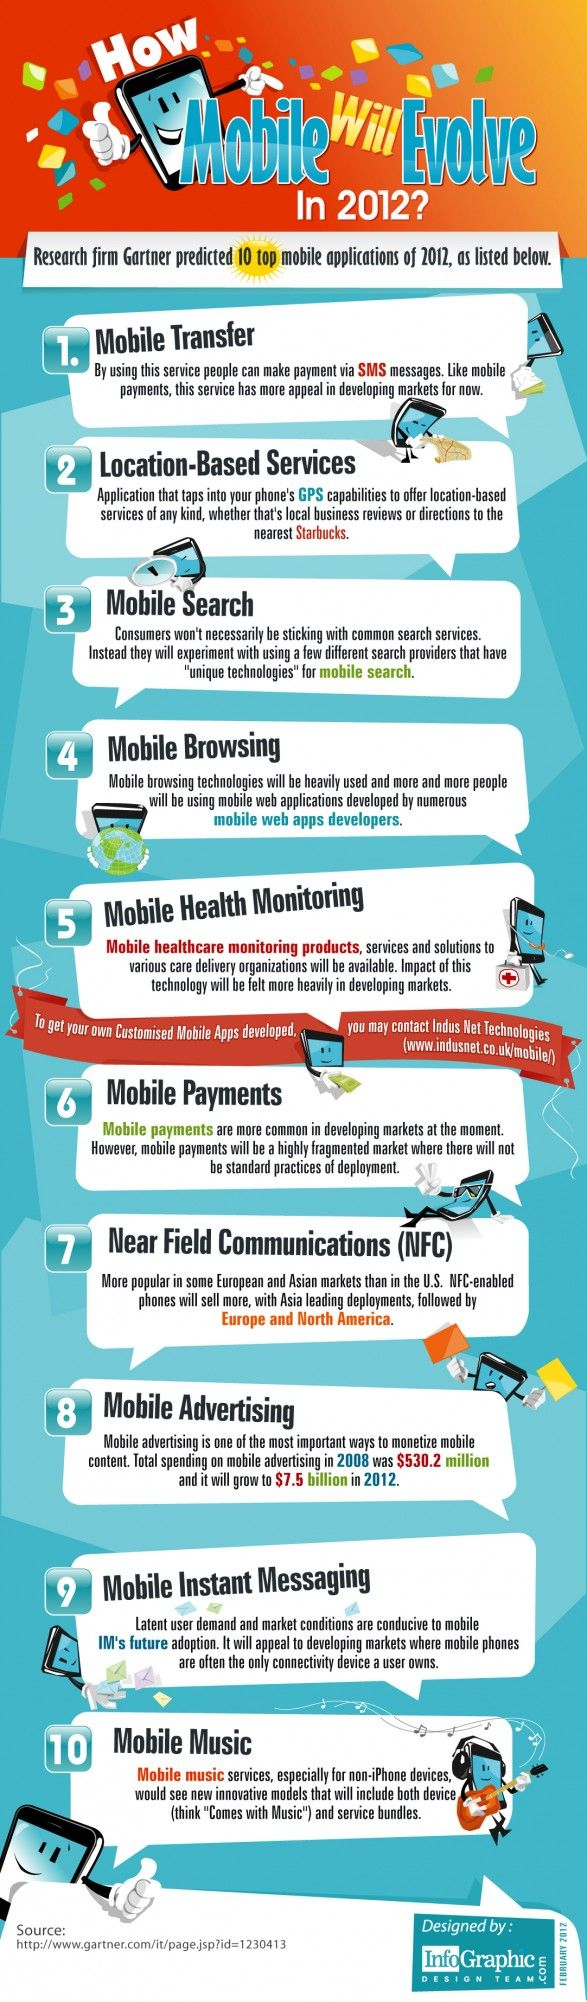 Weer een mooie infographic op Pinterest. How mobile will evolve in 2012?